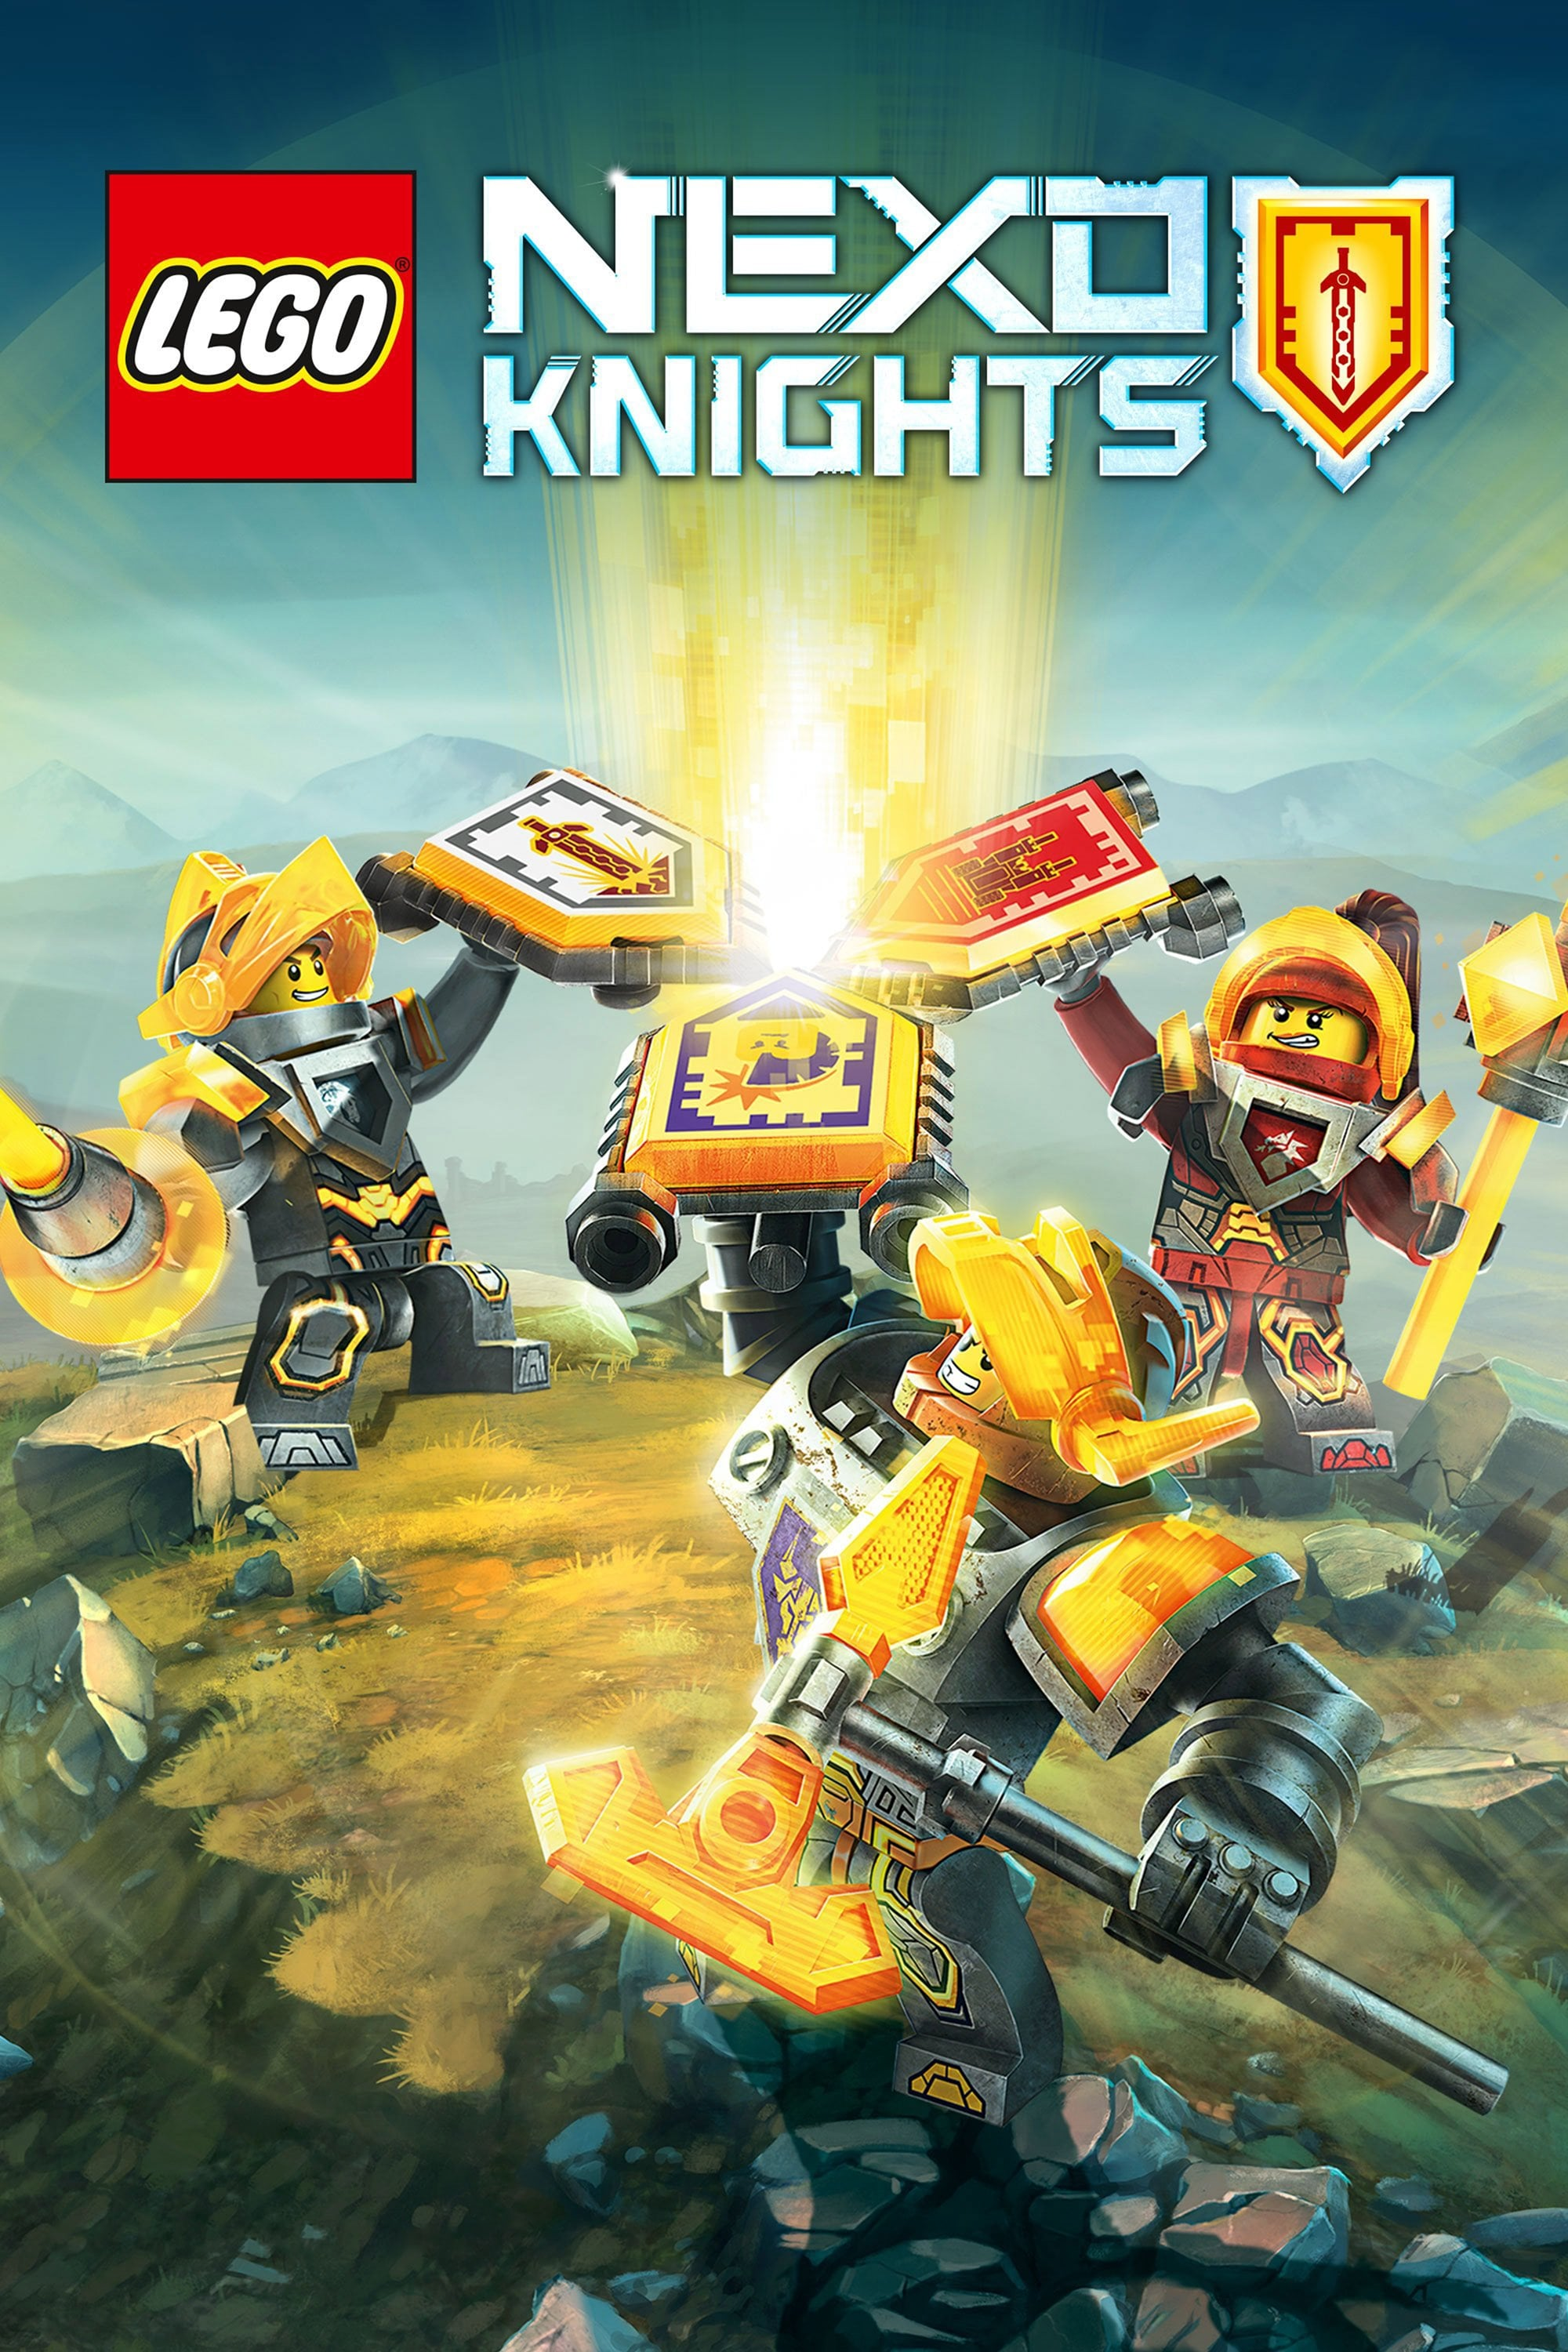 lego nexo knights tv series 2015 posters � the movie